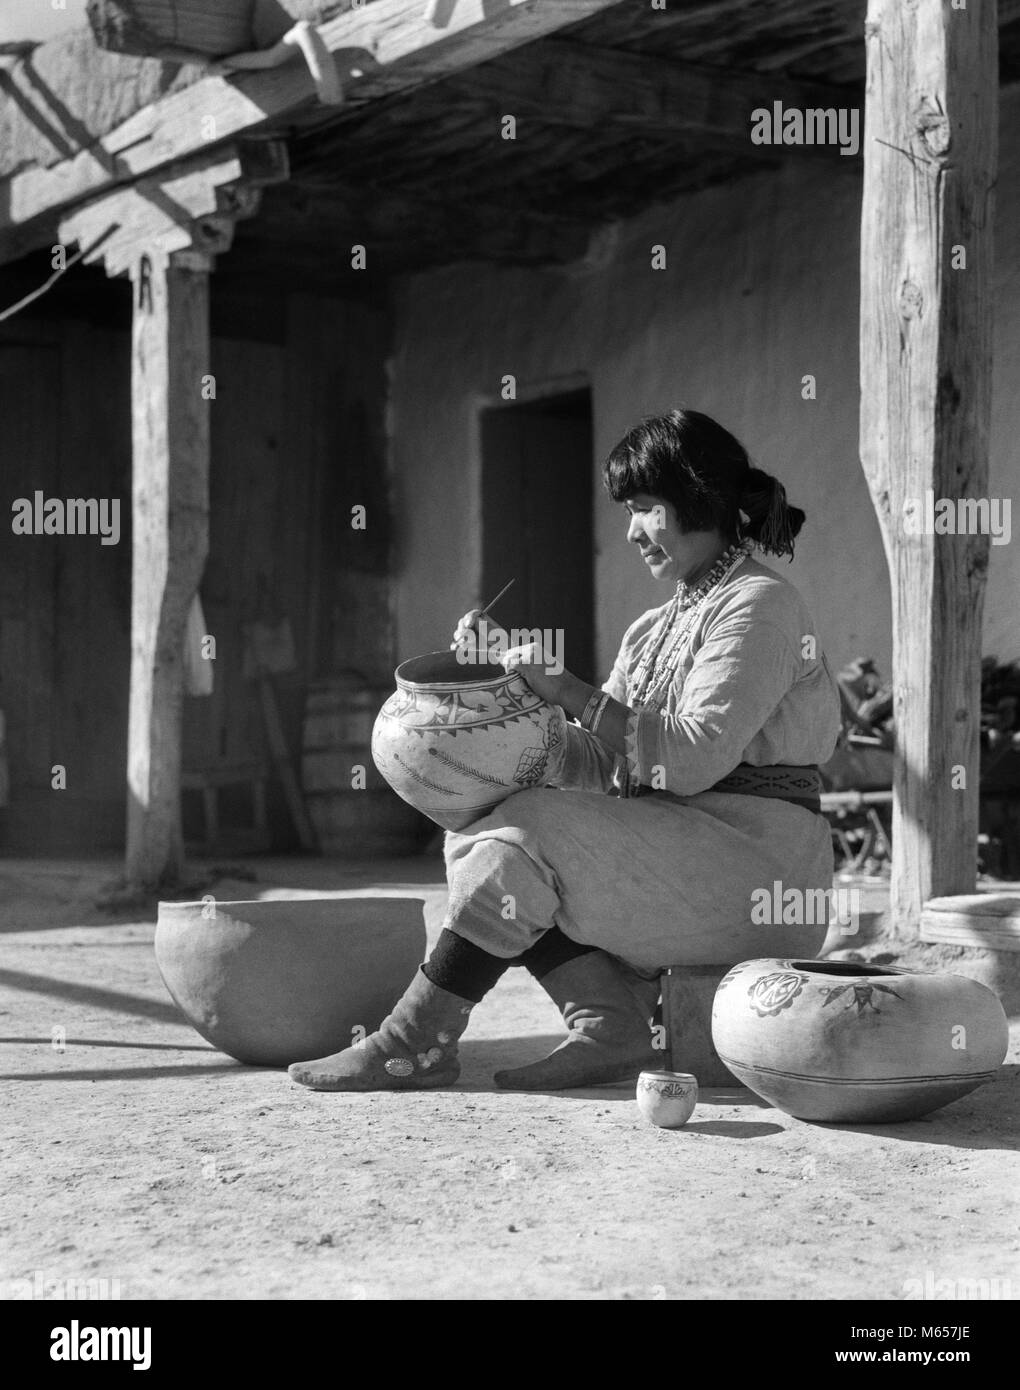 1930s NATIVE AMERICAN INDIAN WOMAN DECORATING POTTERY COCHITI PUEBLO NEW MEXICO USA - i1493 HAR001 HARS 25-30 YEARS - Stock Image